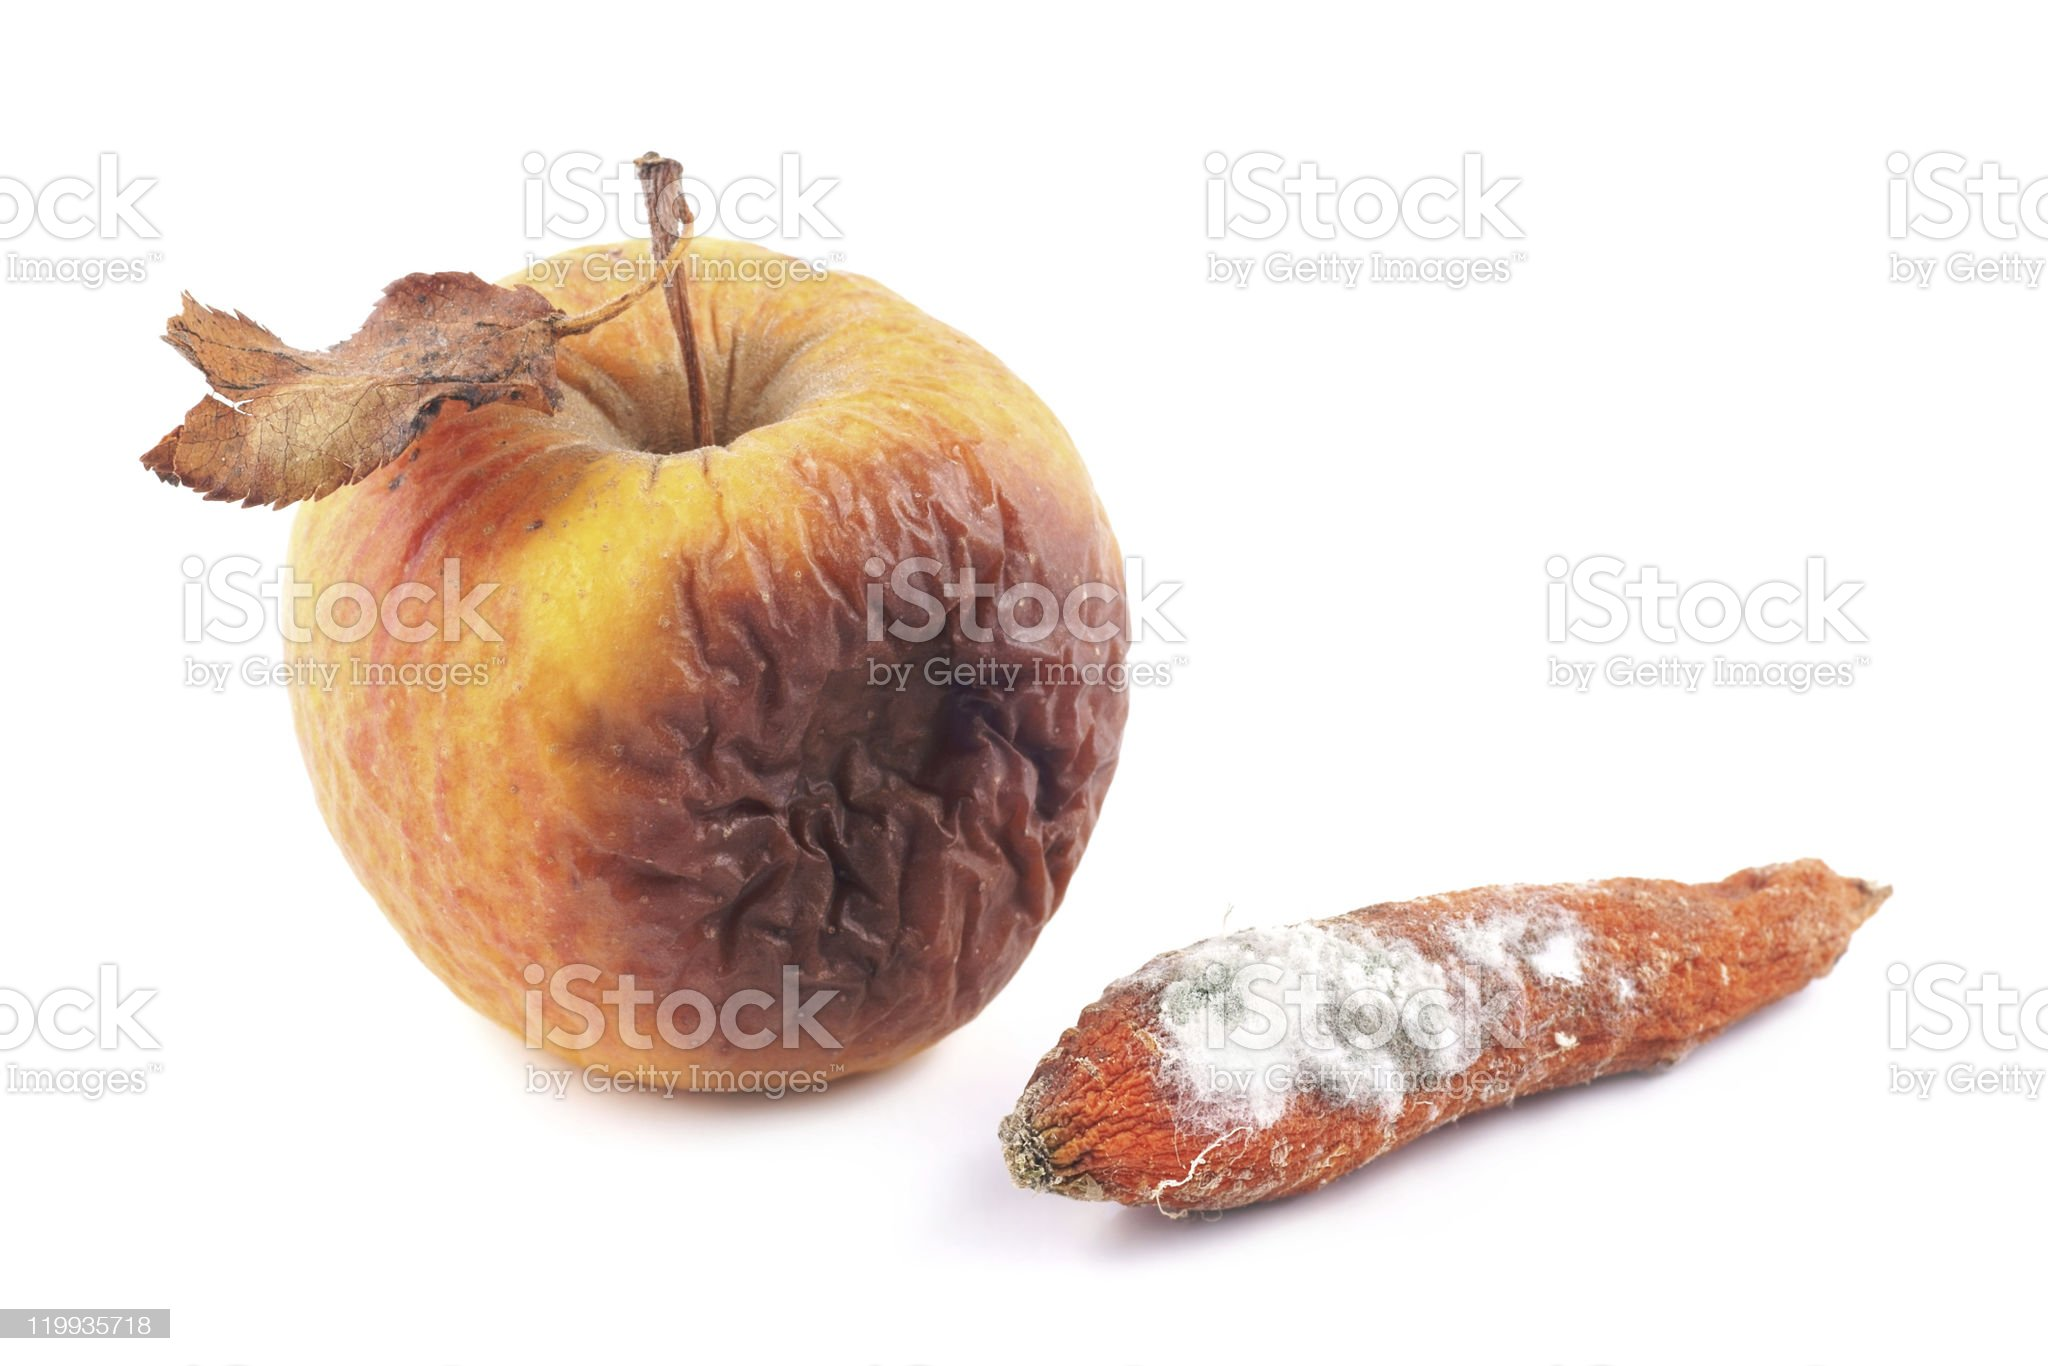 Apple rotten and moldy carrot royalty-free stock photo